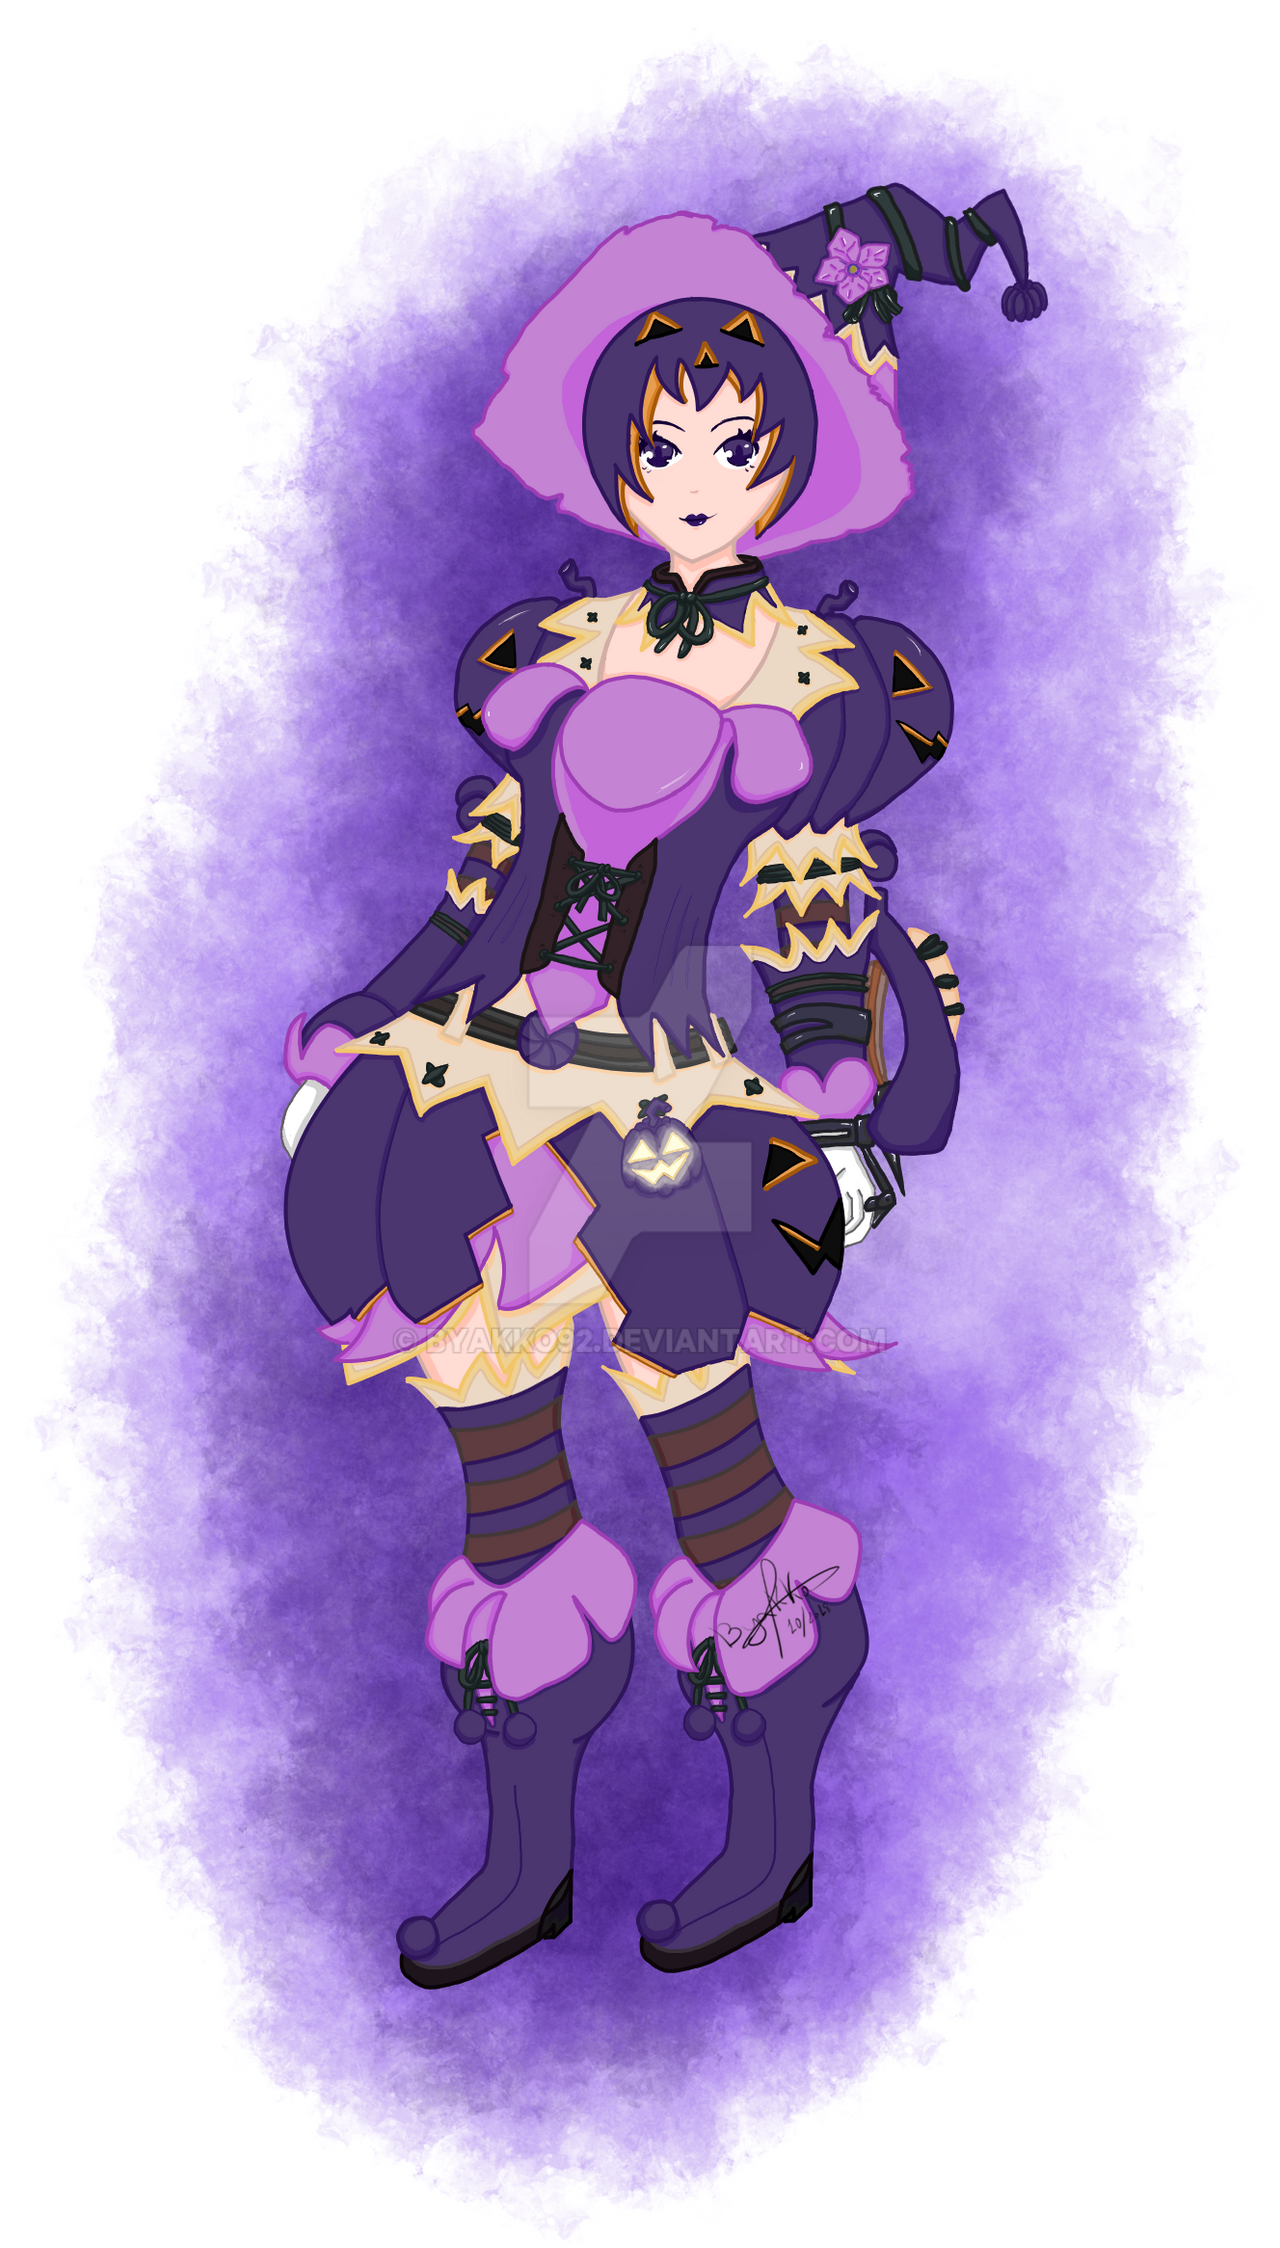 monster hunter world halloween costume drawingbyakko92 on deviantart